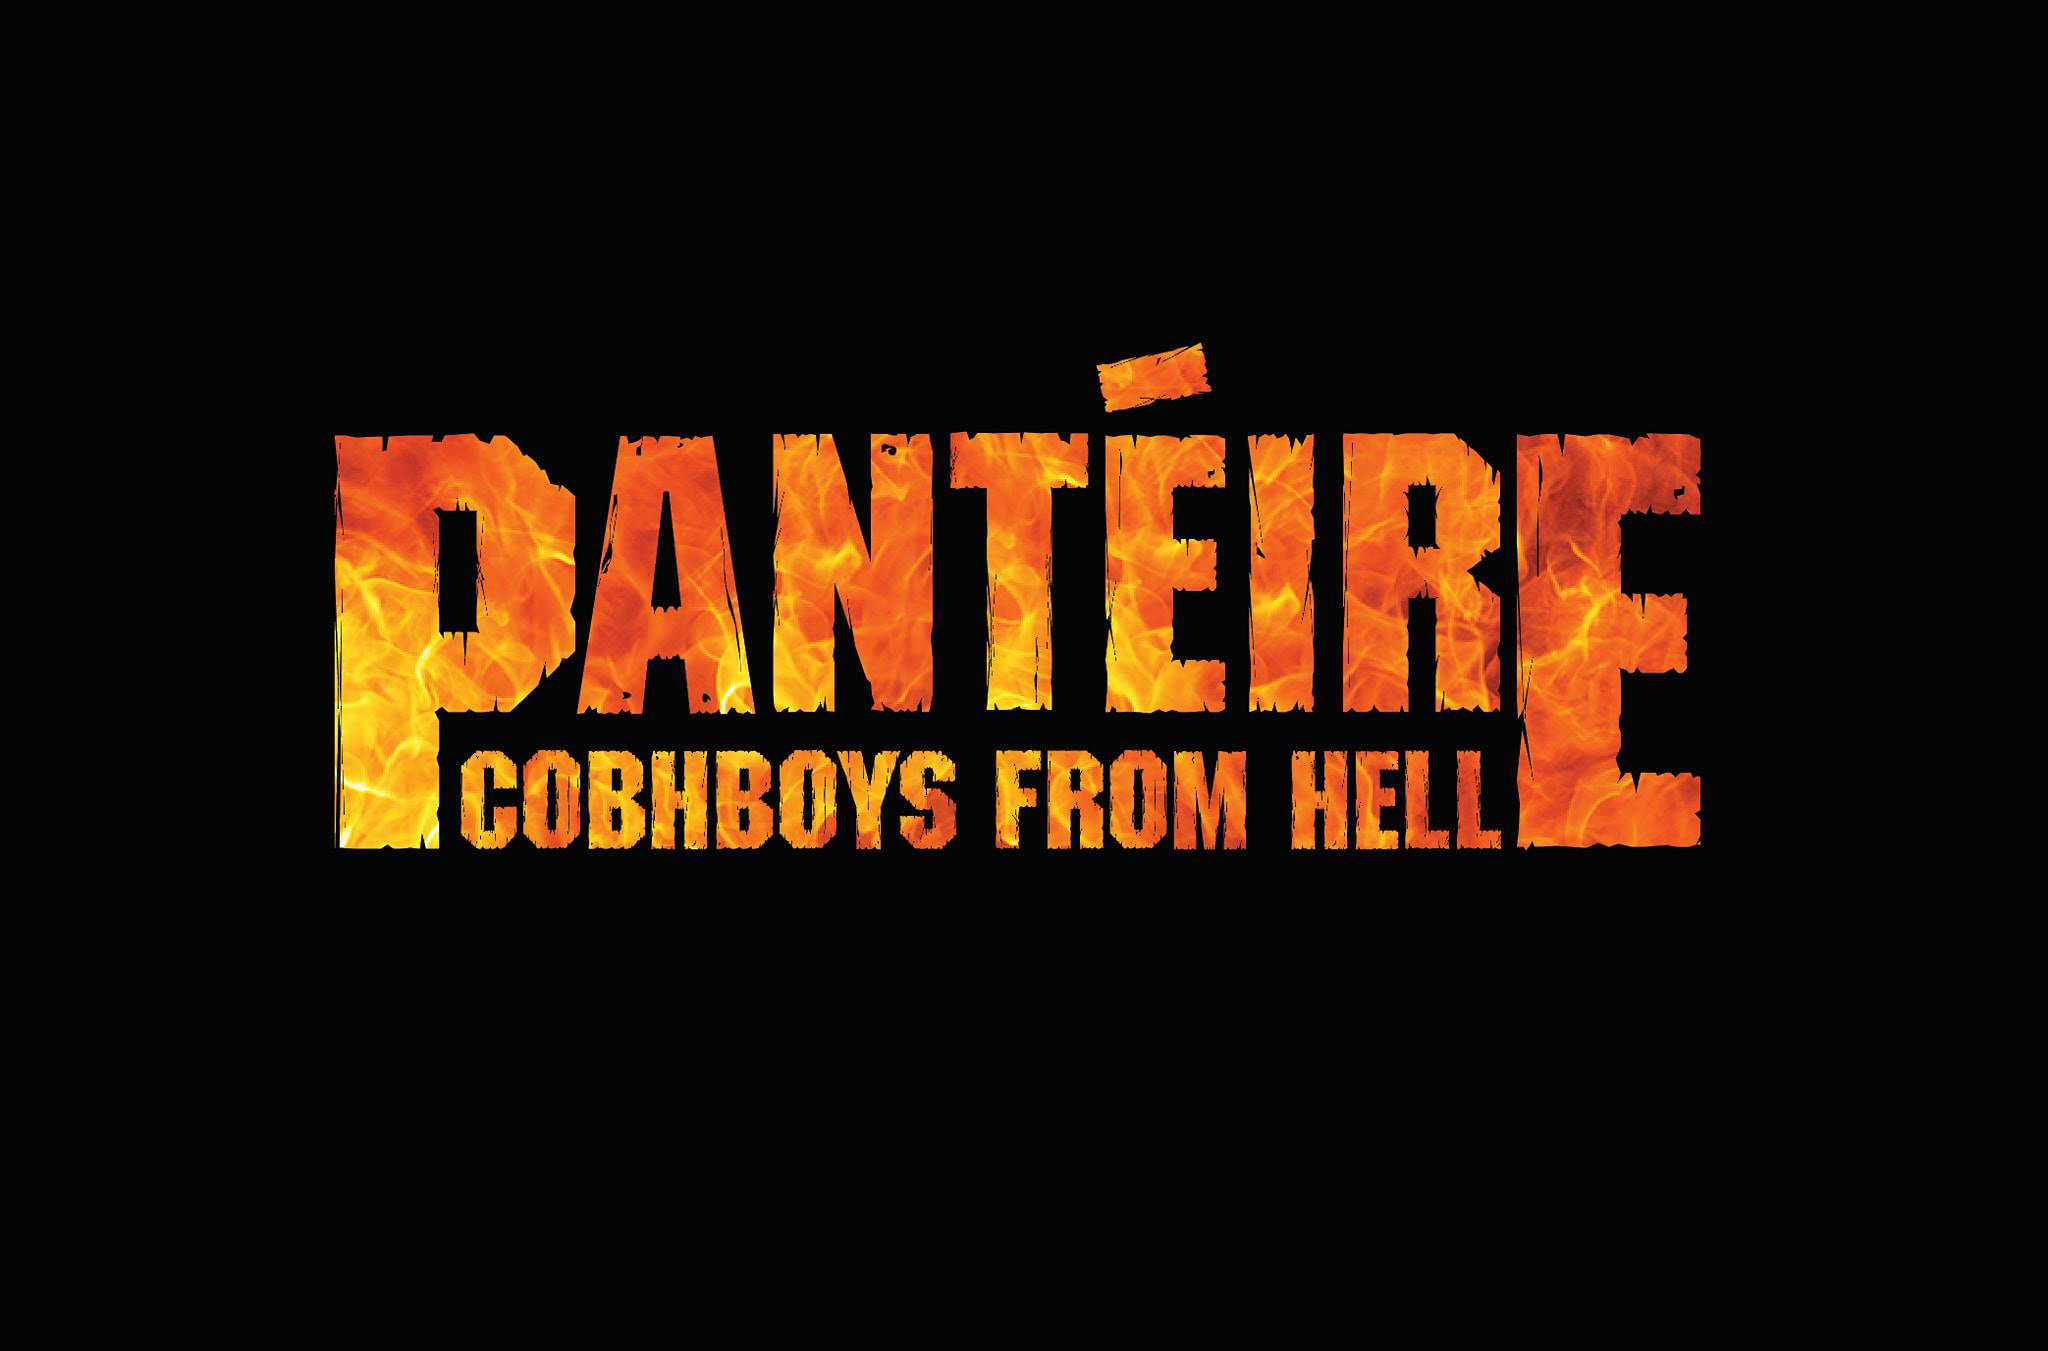 cobhboys from hell (pantera tribute) Cobhboys from Hell (Pantera Tribute) Cobhboys